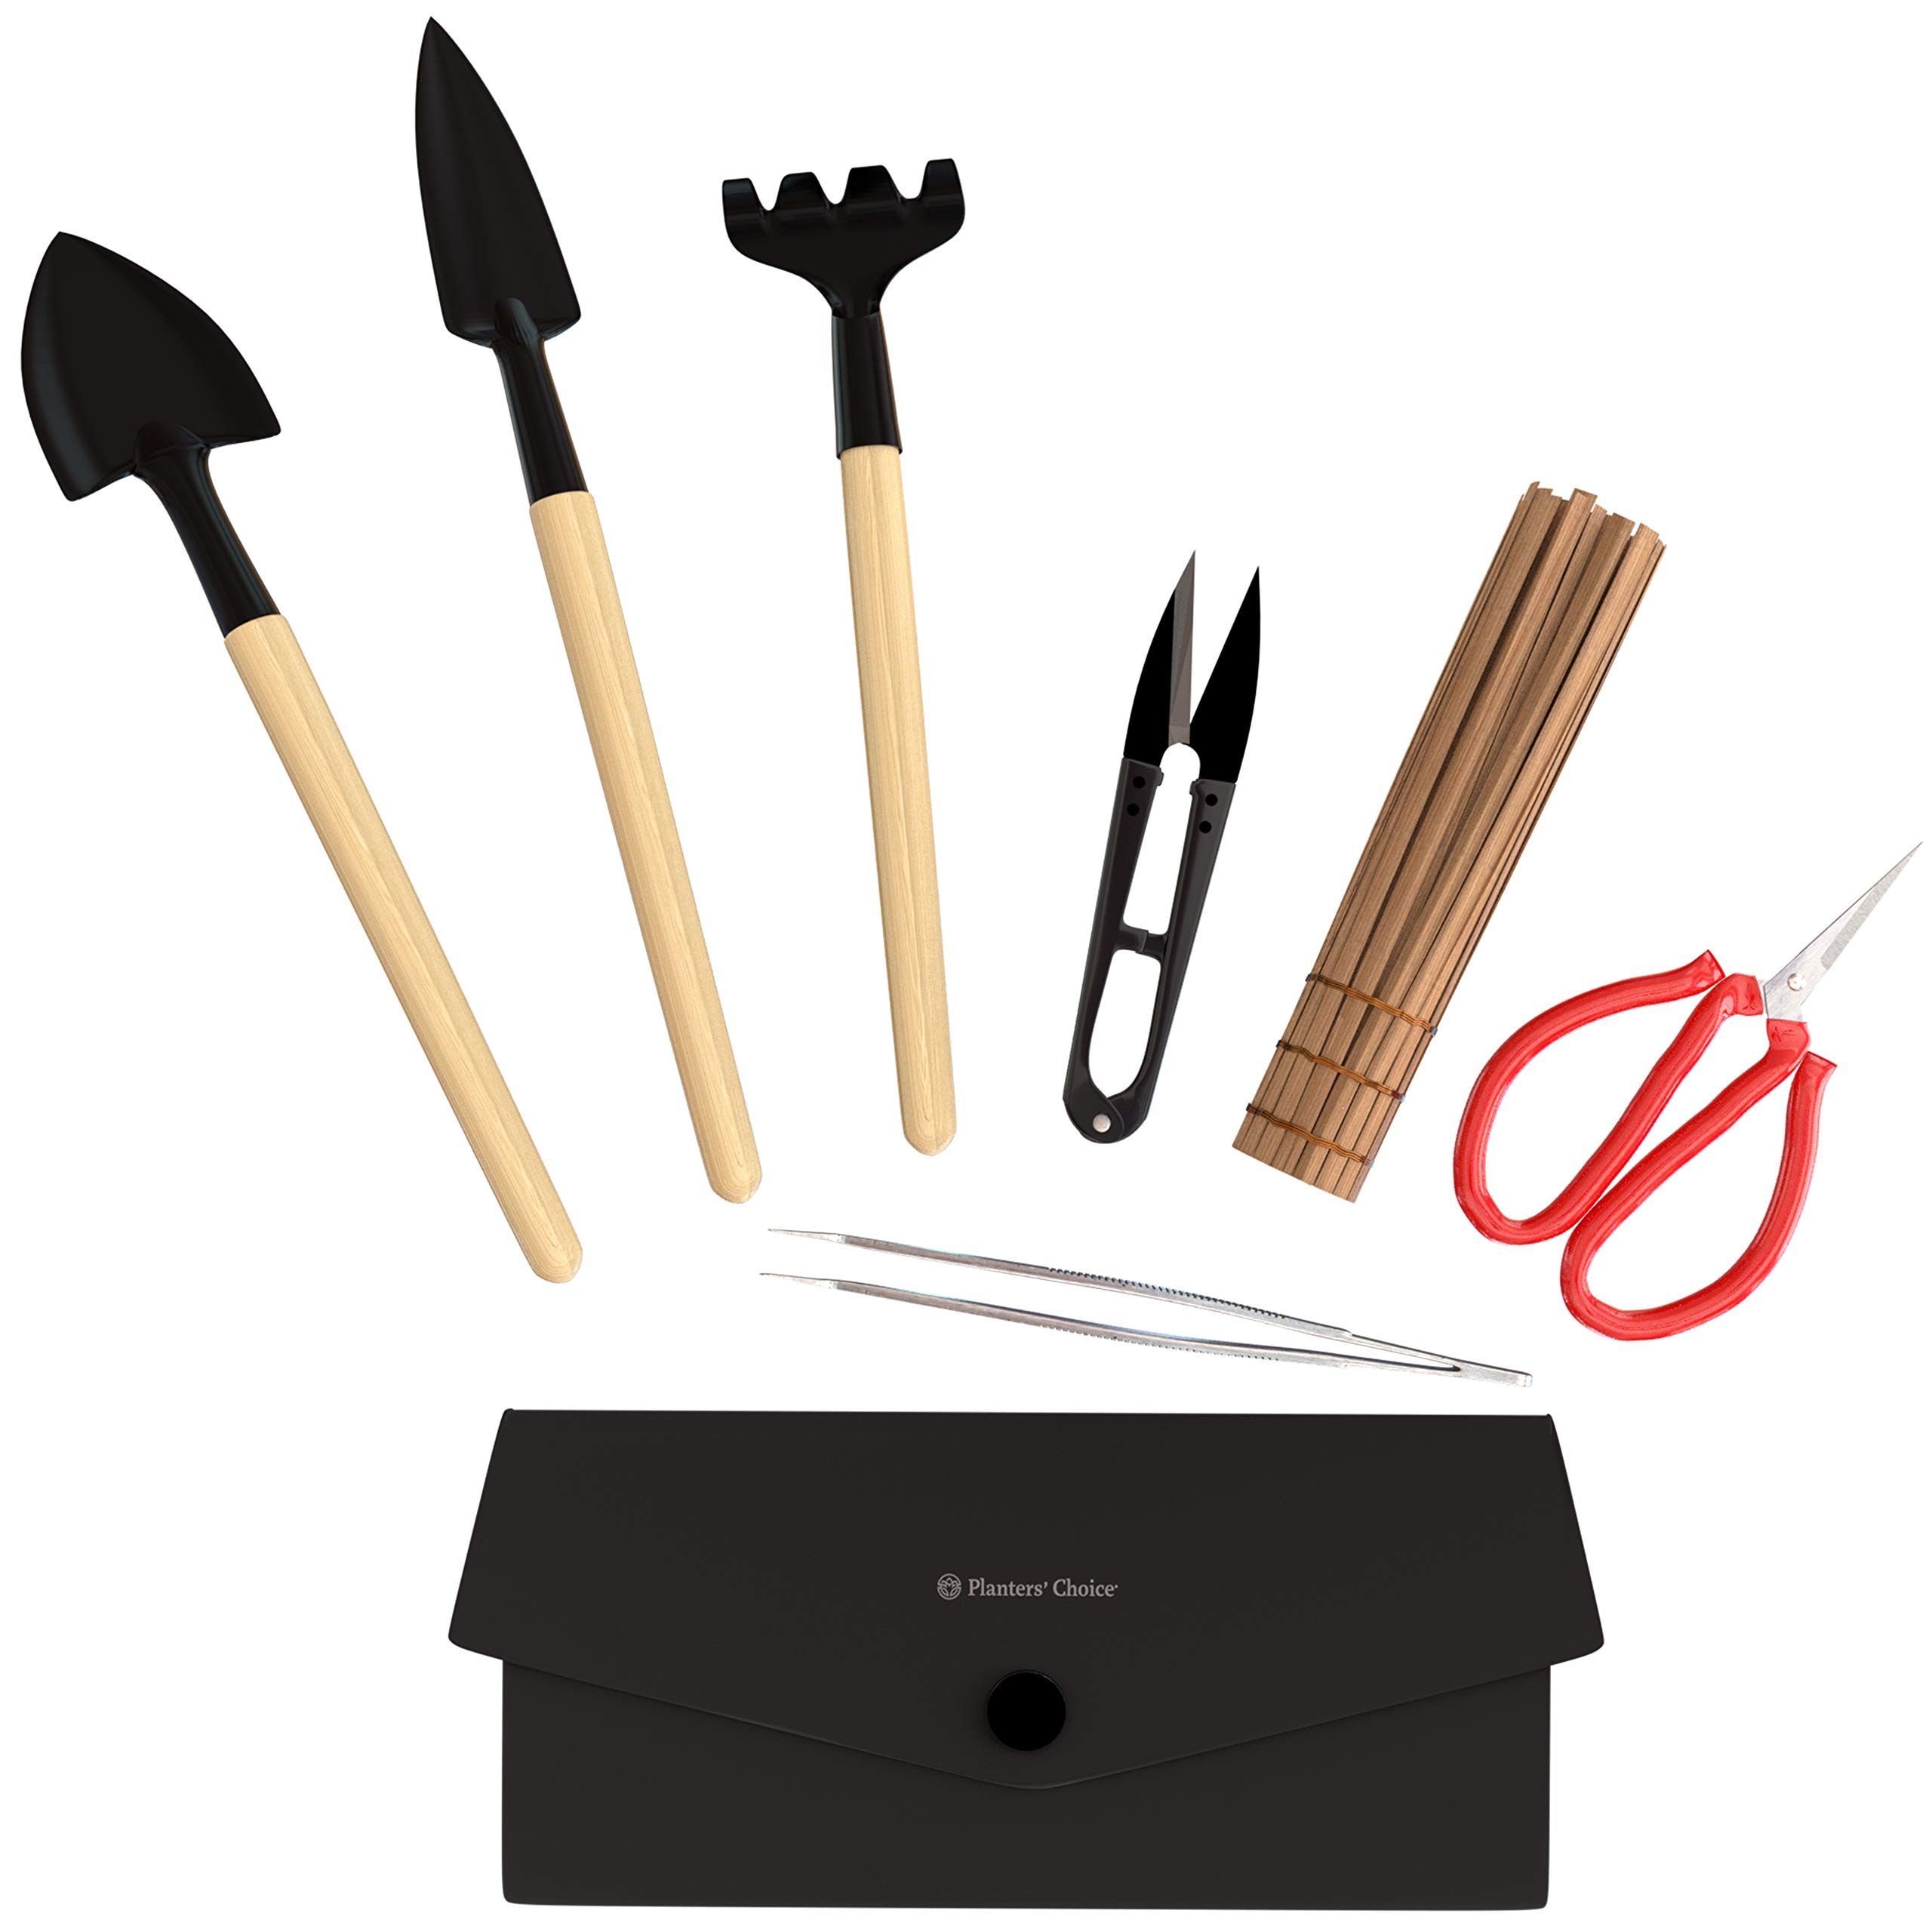 Bonsai Tool Kit Deluxe - Includes: Wooden Rake, Long & Wide Spades, Scissors, Tweezers, Bamboo Brush, and Pruning Shears (Trimmer/Clipper) in Storage Holder   Bonsai Tools Accessories